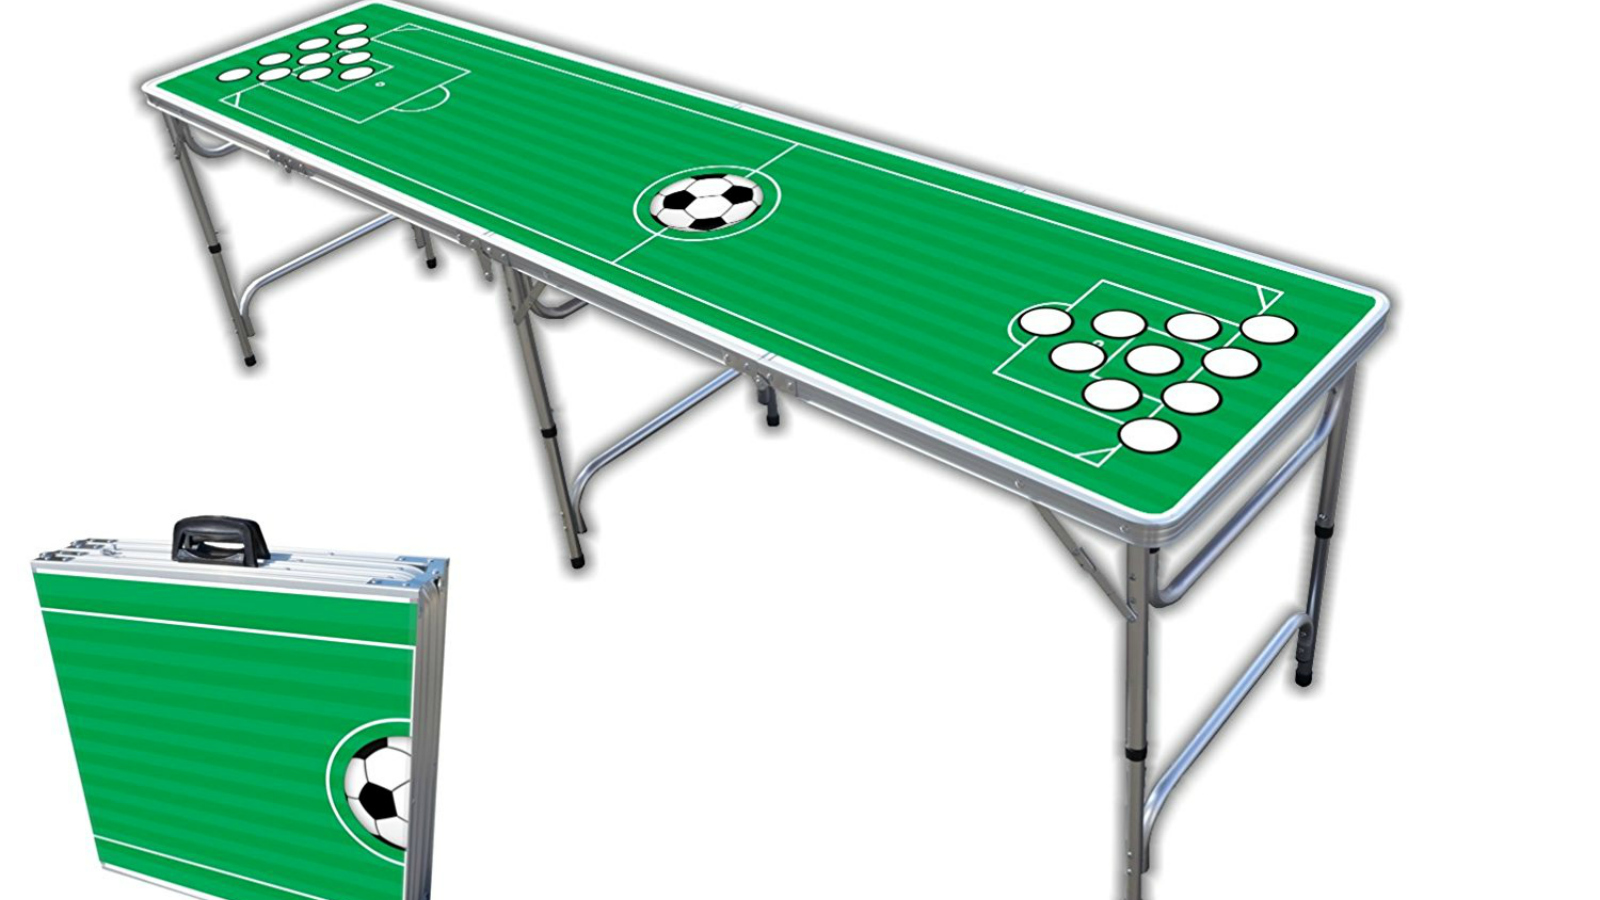 Last Minute Soccer Gifts Amazon Prime: Soccer Beer Pong Table